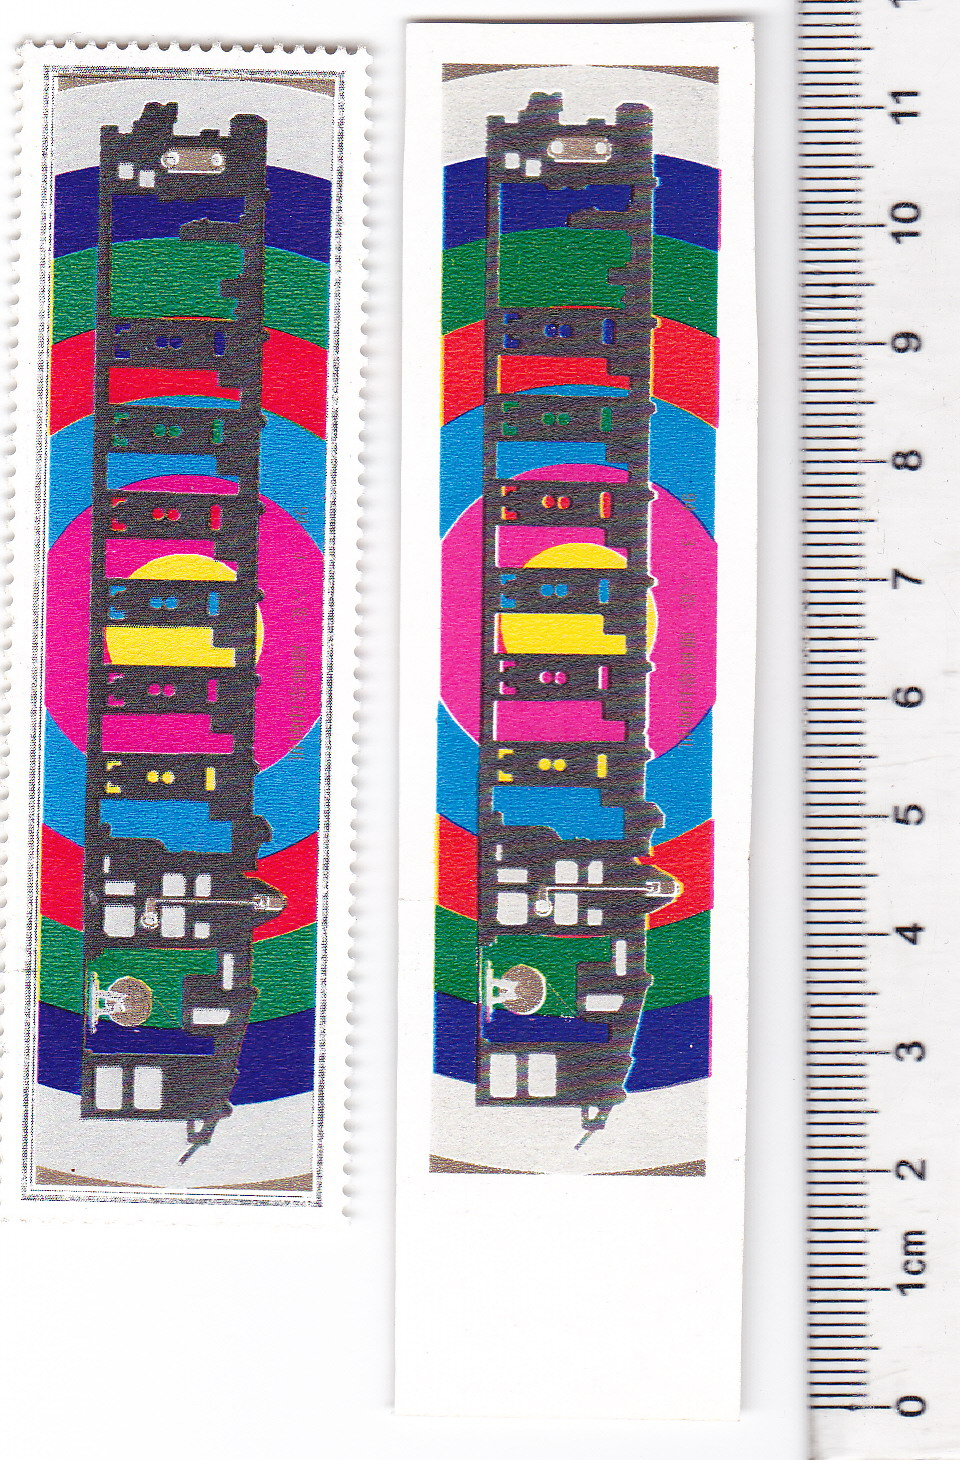 M2203, China New Stamp Print Machine Color Trial, 2 Pcs Imperforate, 1994